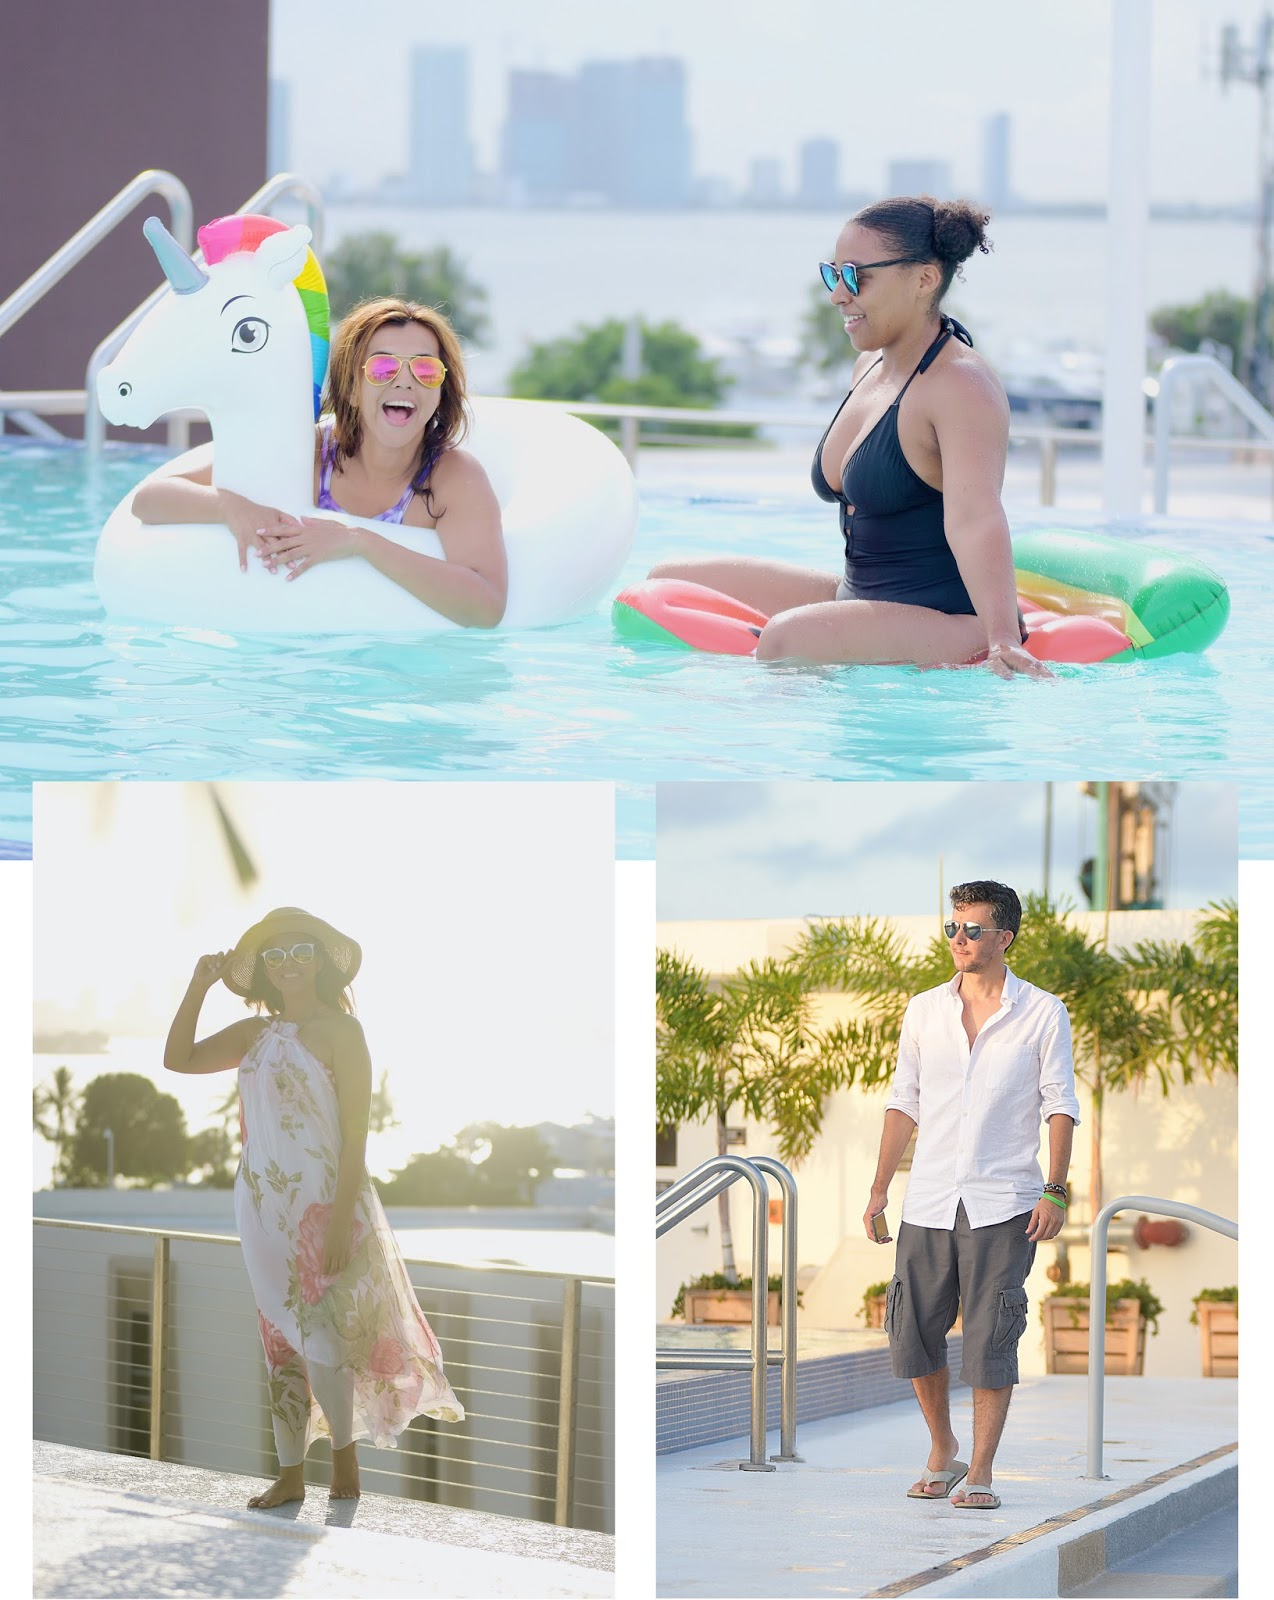 GREAT TIMES AT RESIDENCE INN BY MARRIOTT - SOUTH BEACH